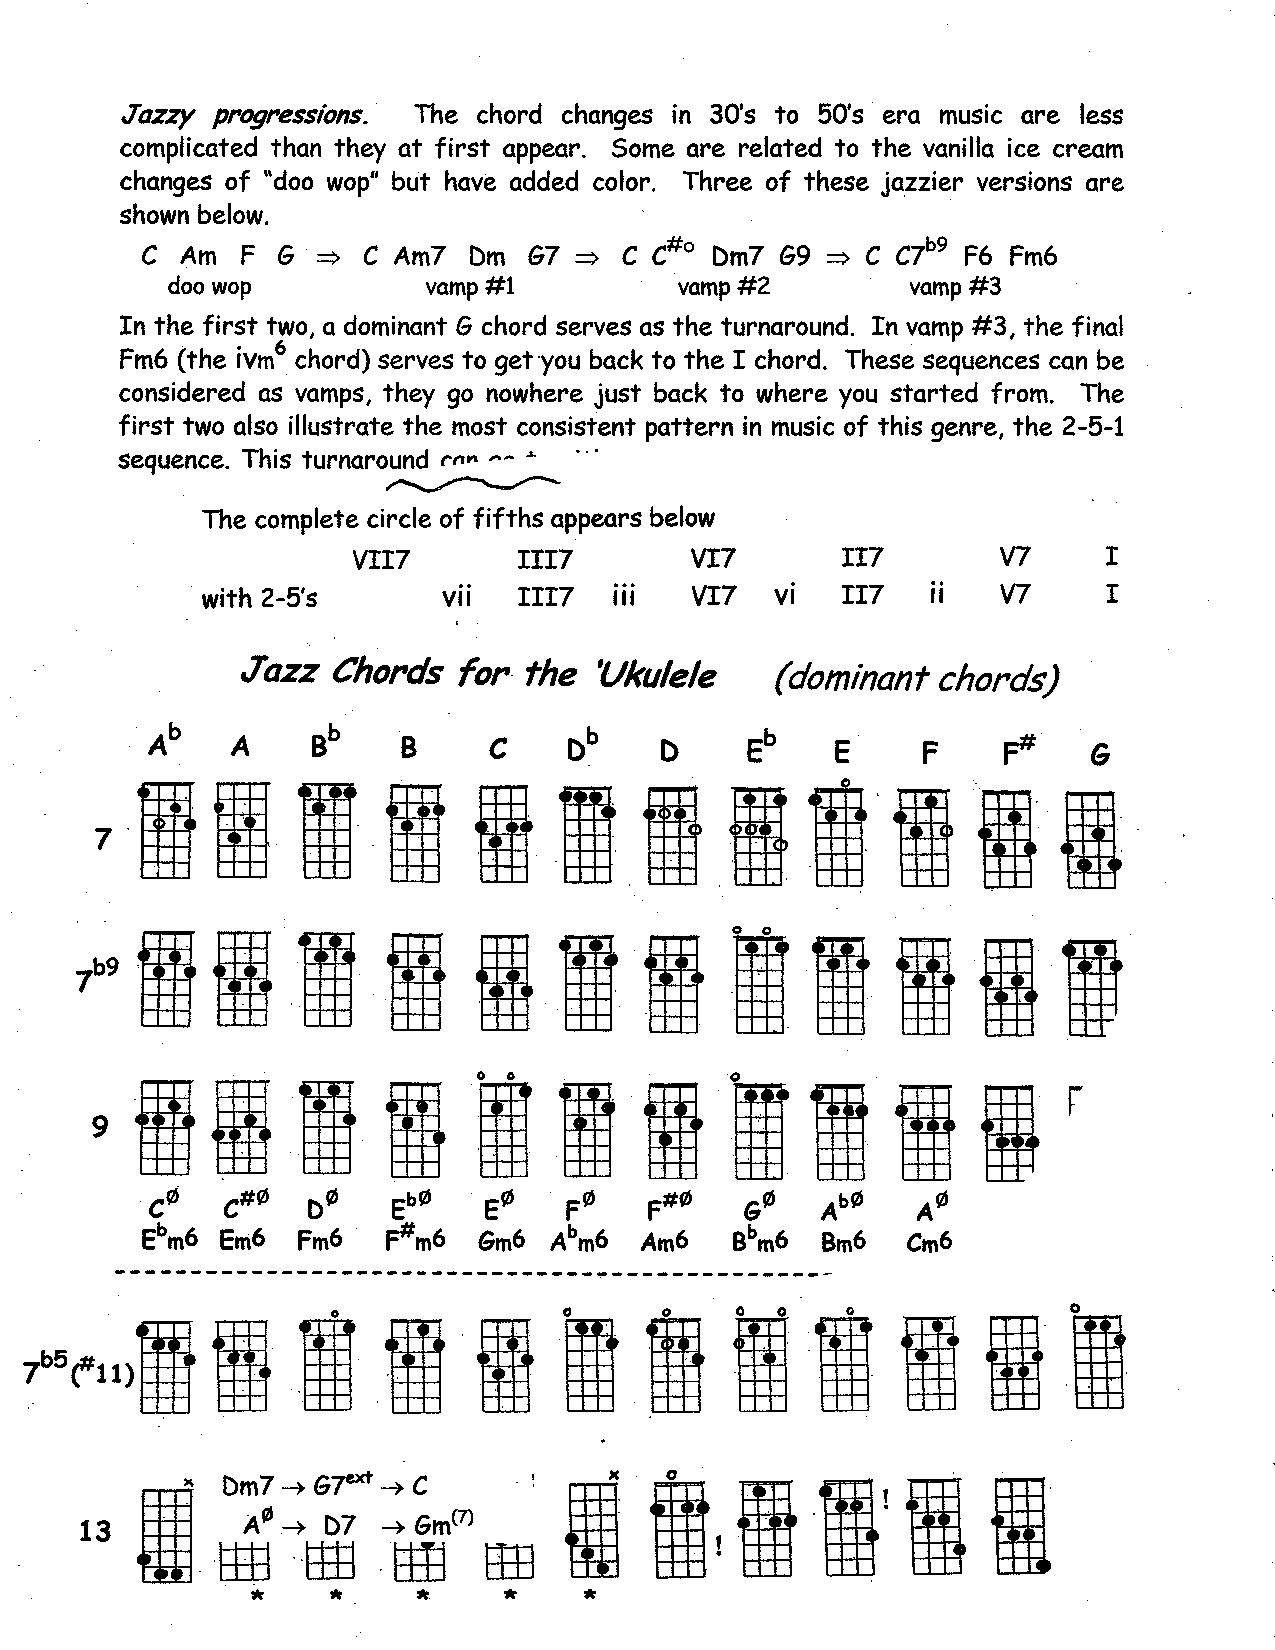 Jazz Chords and changes - page 1